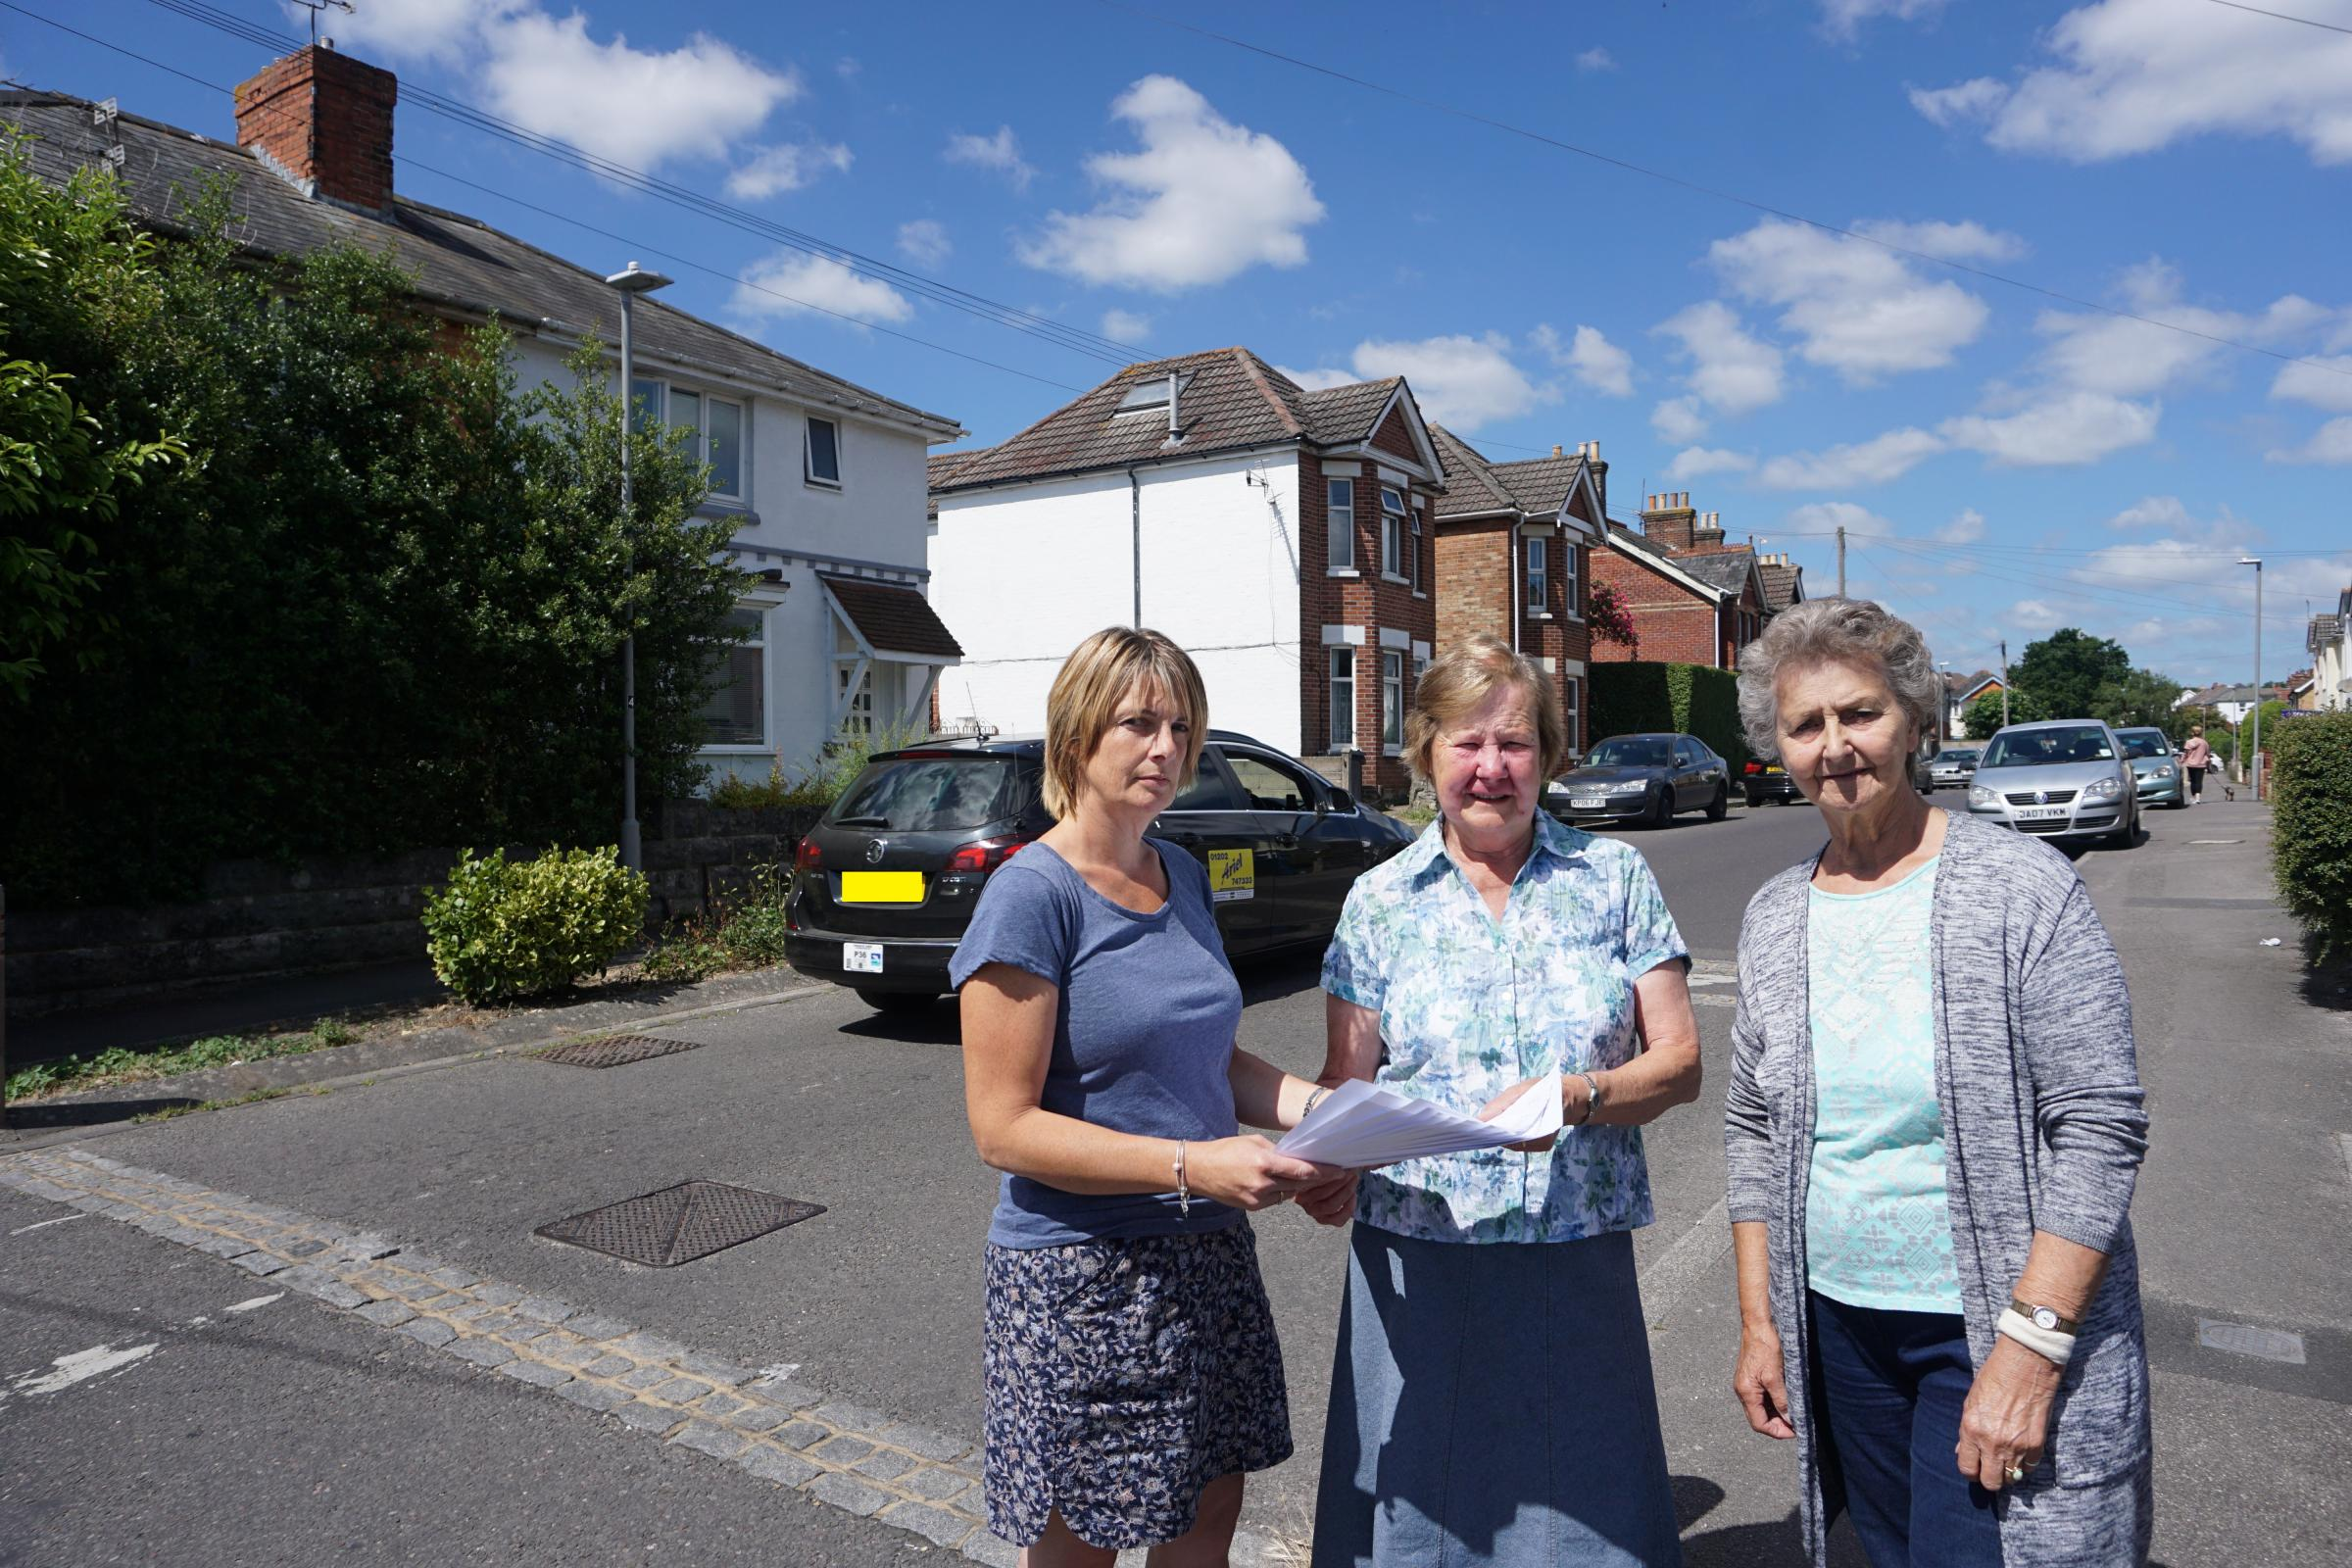 Recreation Road residents Cindy Harris and Barbara Reeve with Cllr Marion Le Poidevin (centre)